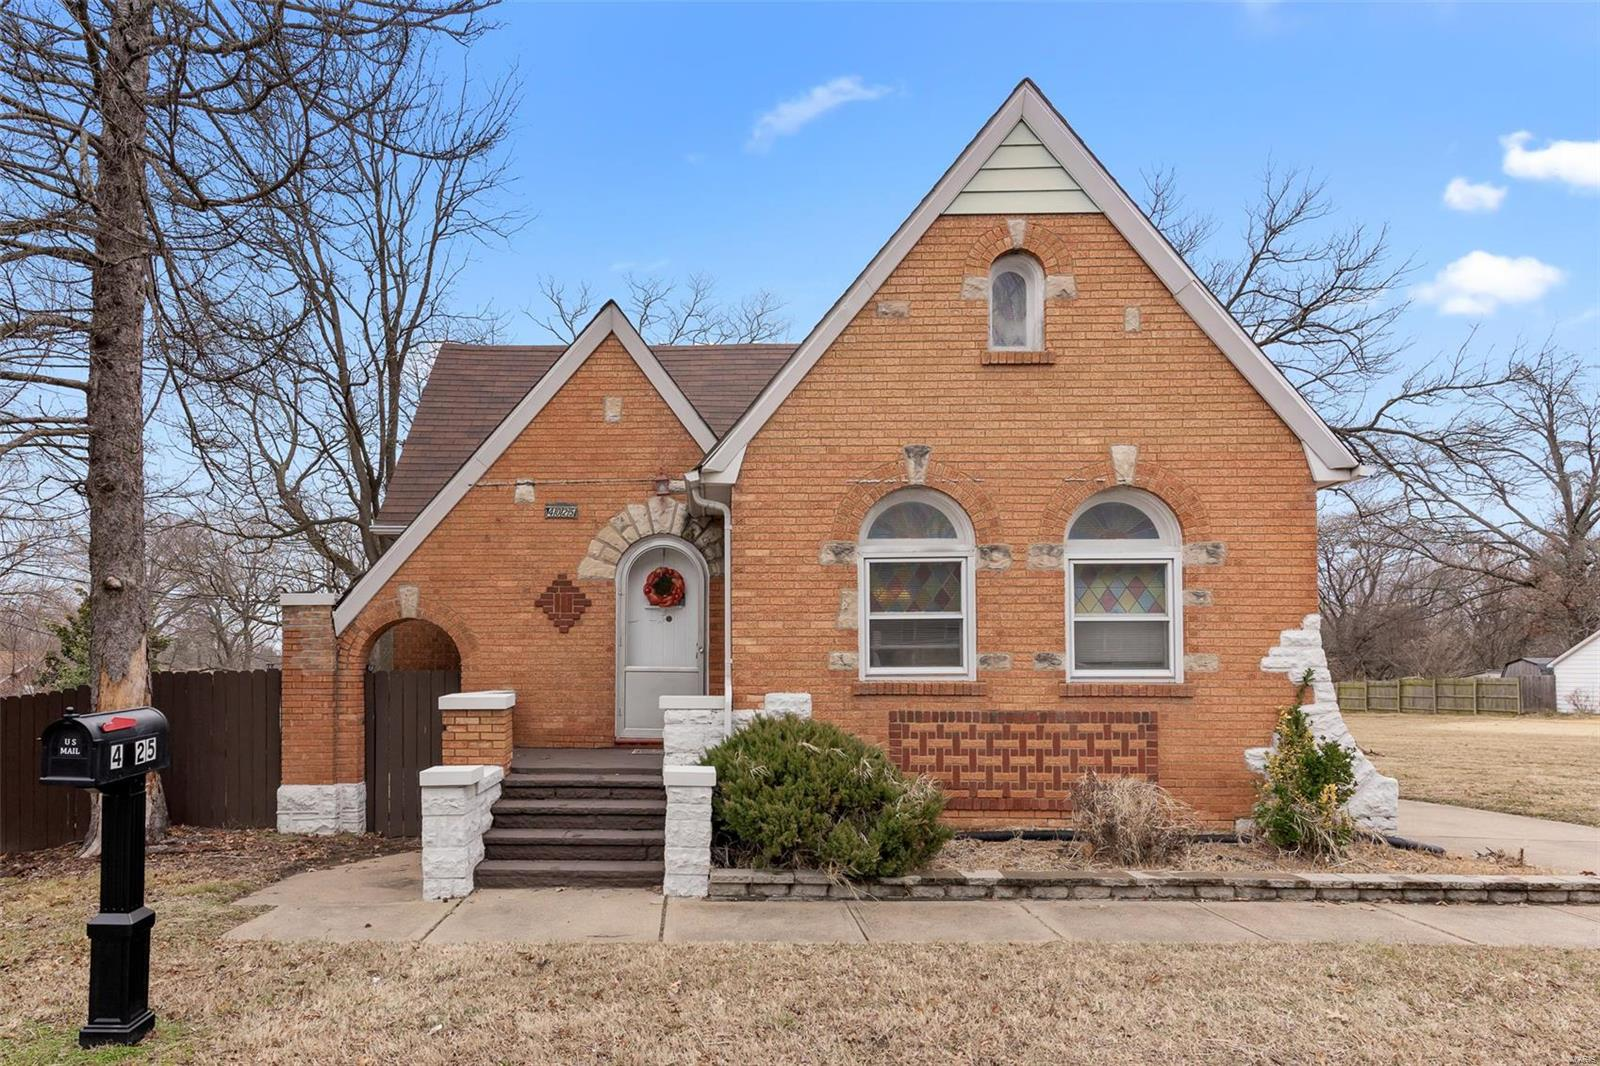 4025 Reavis Barracks Property Photo - St Louis, MO real estate listing